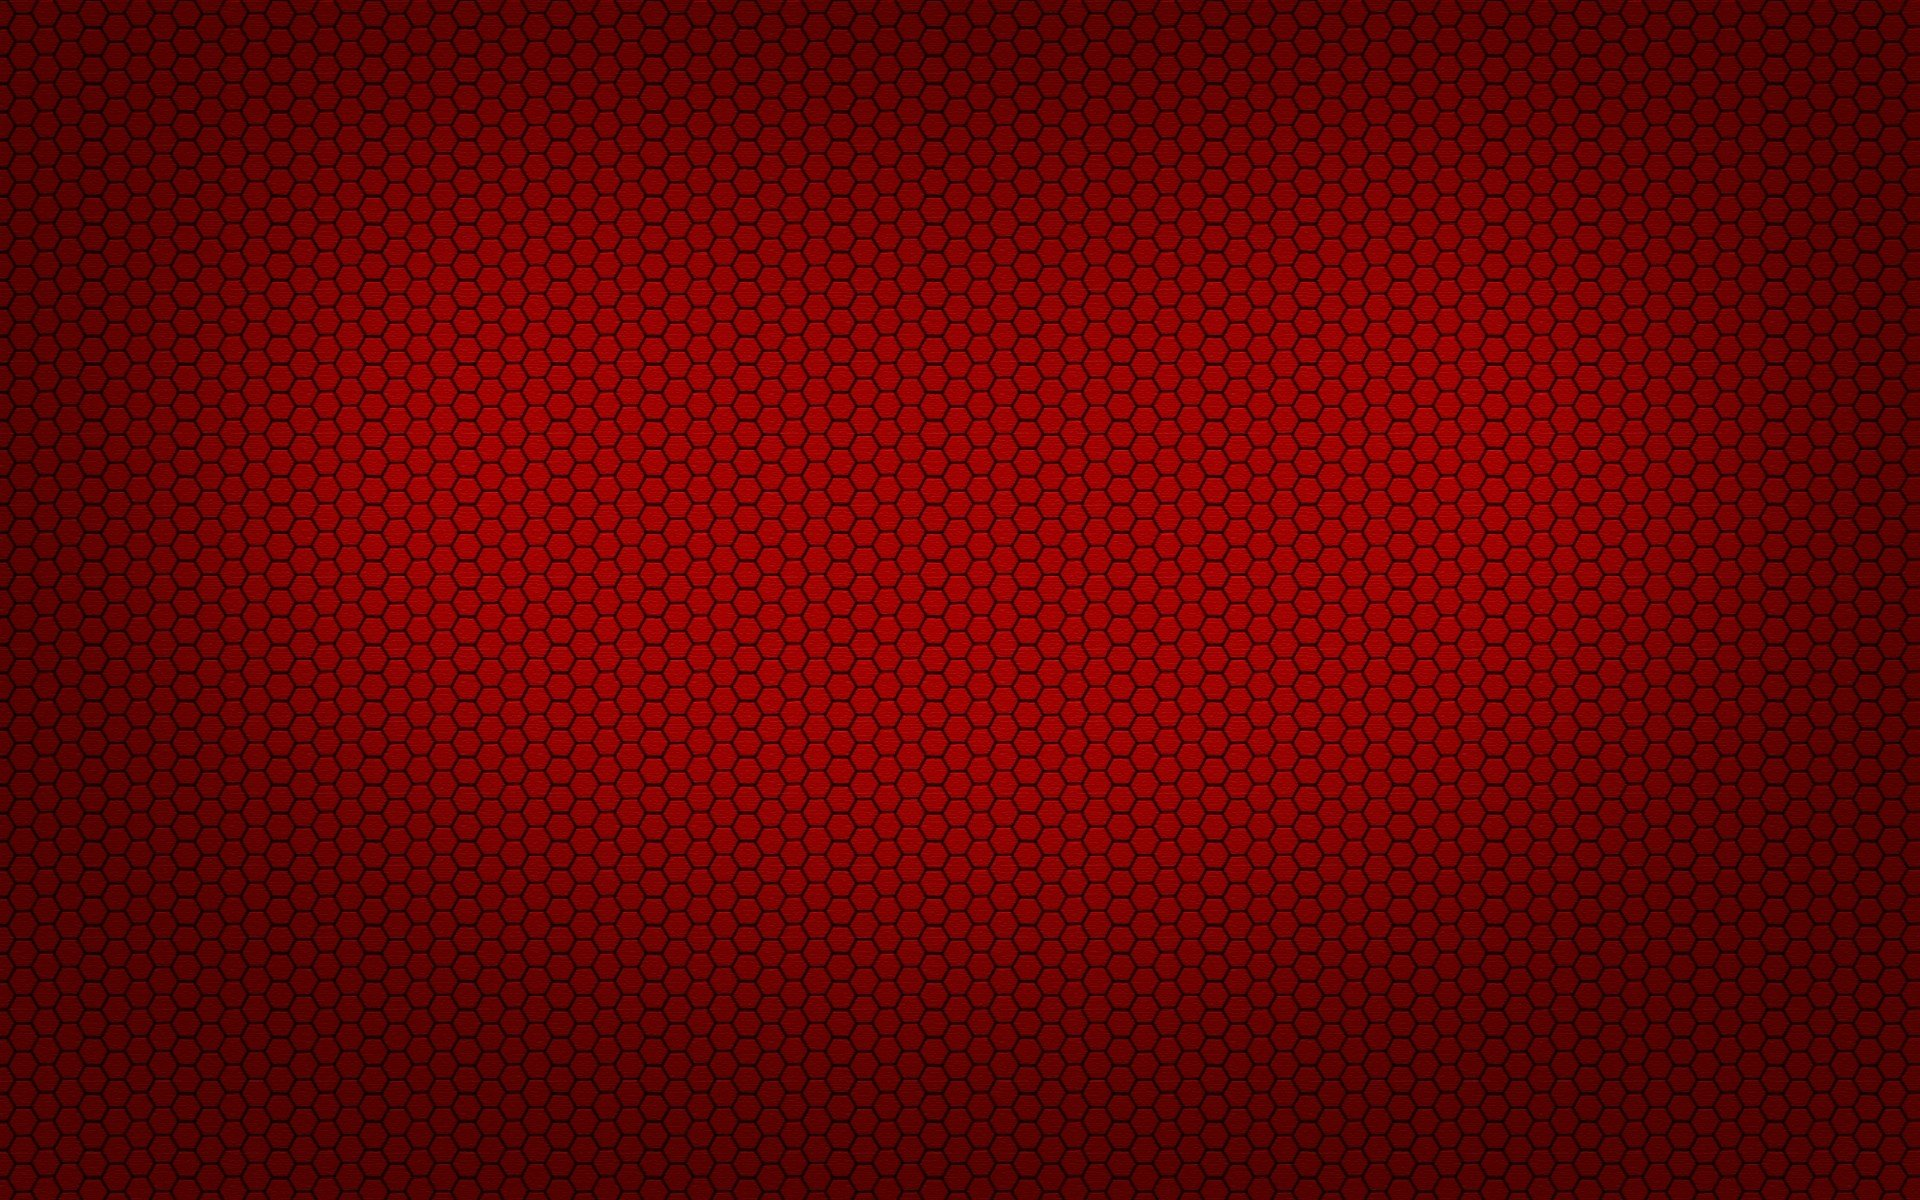 Plain backgrounds dark red plain background hd wallpapers Black 1920x1200